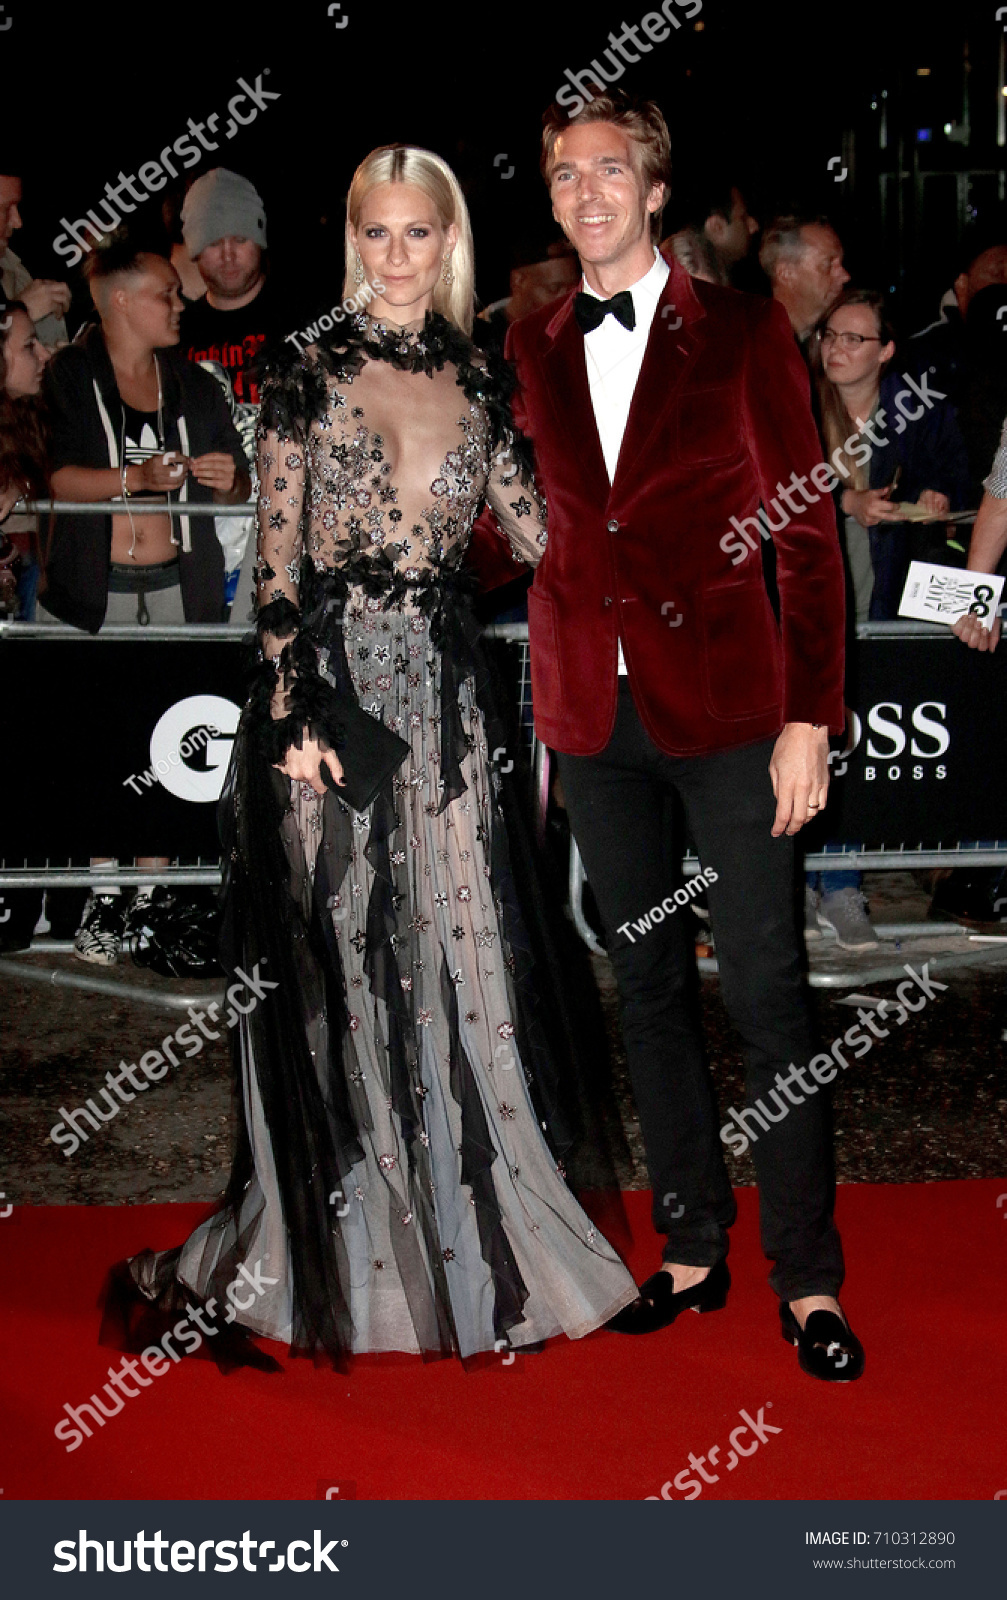 Poppy delevingne gq men of the year awards in london new pics